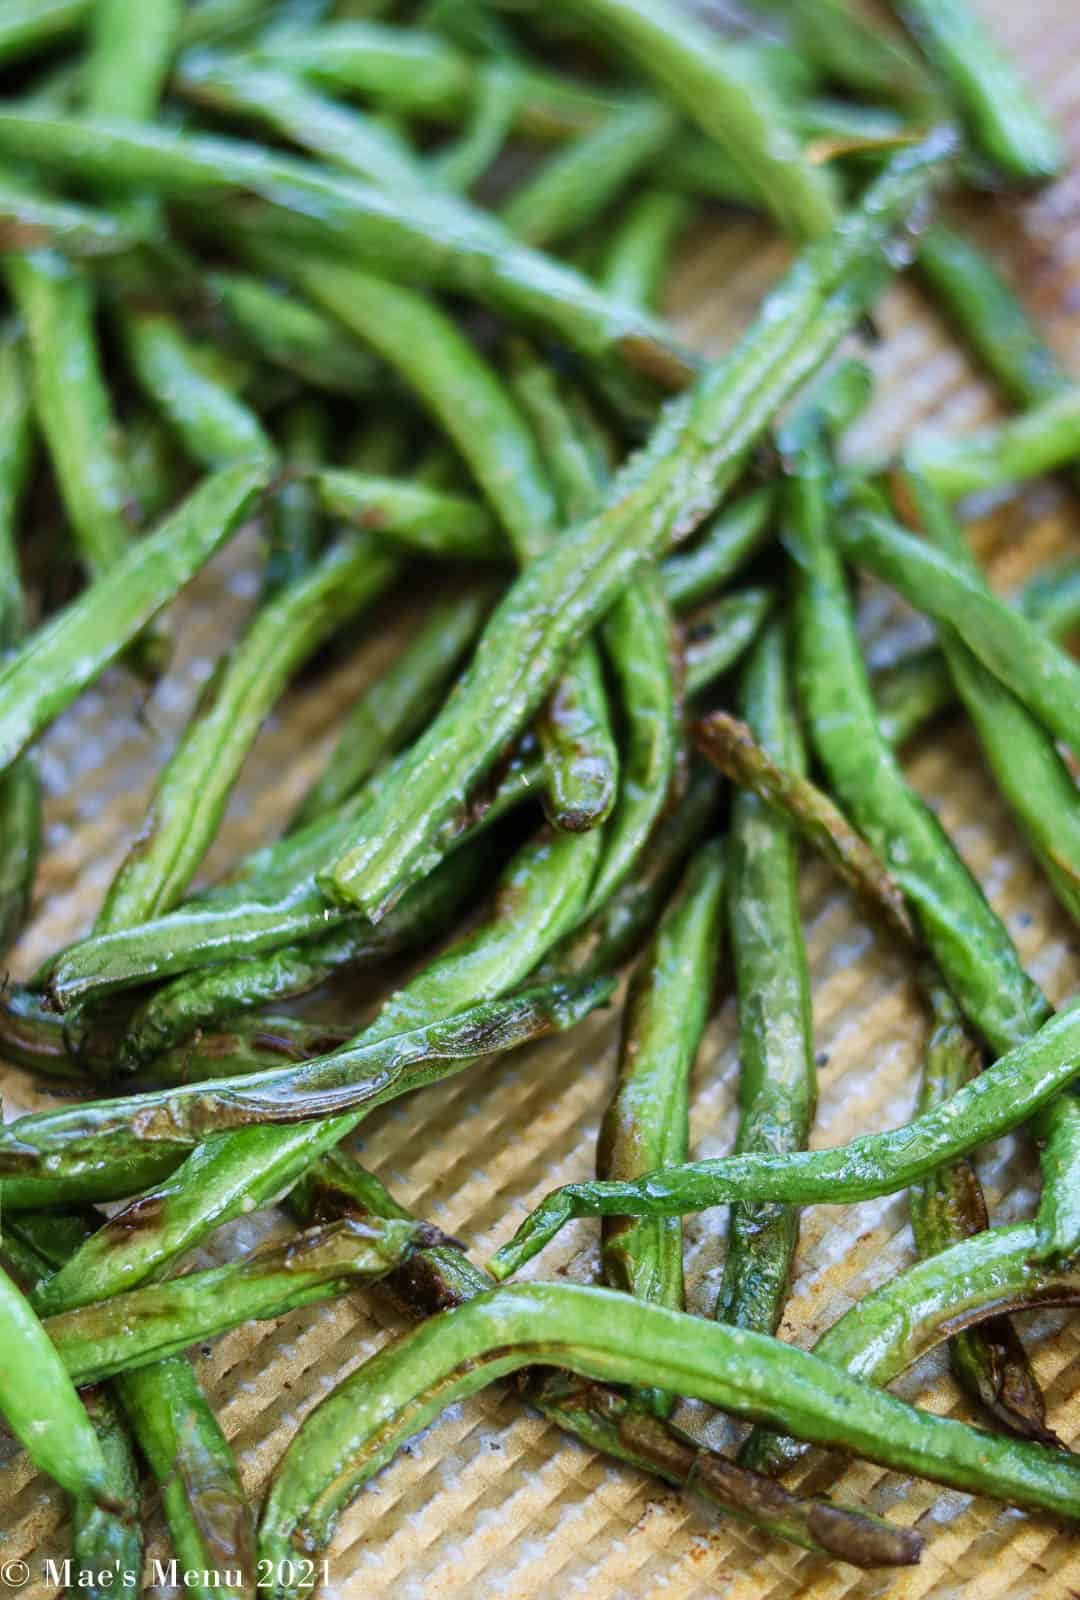 An up-close overhead shot of a tray of air fryer green beans